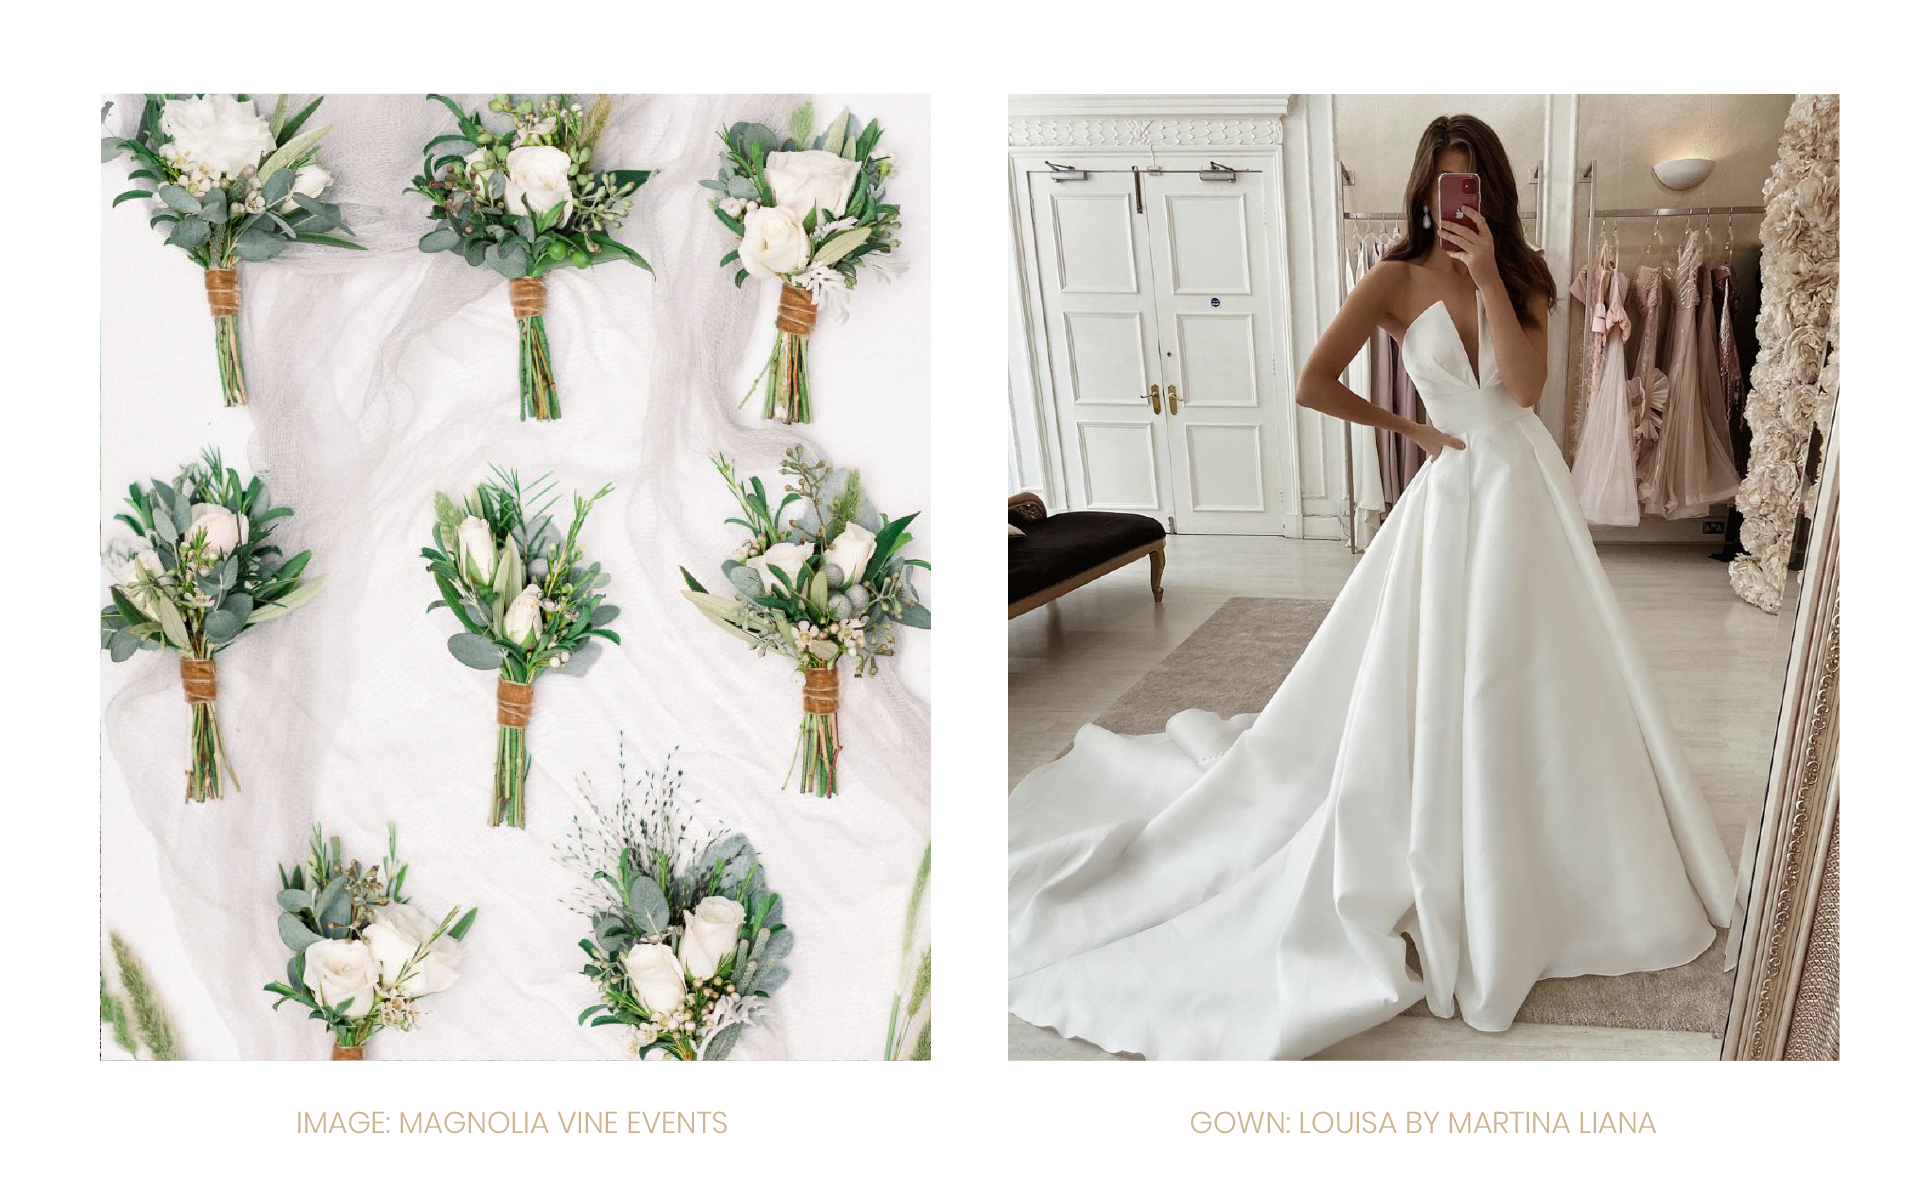 ELEGANZA INSPIRATION: The Minimalist Wedding. Desktop Image